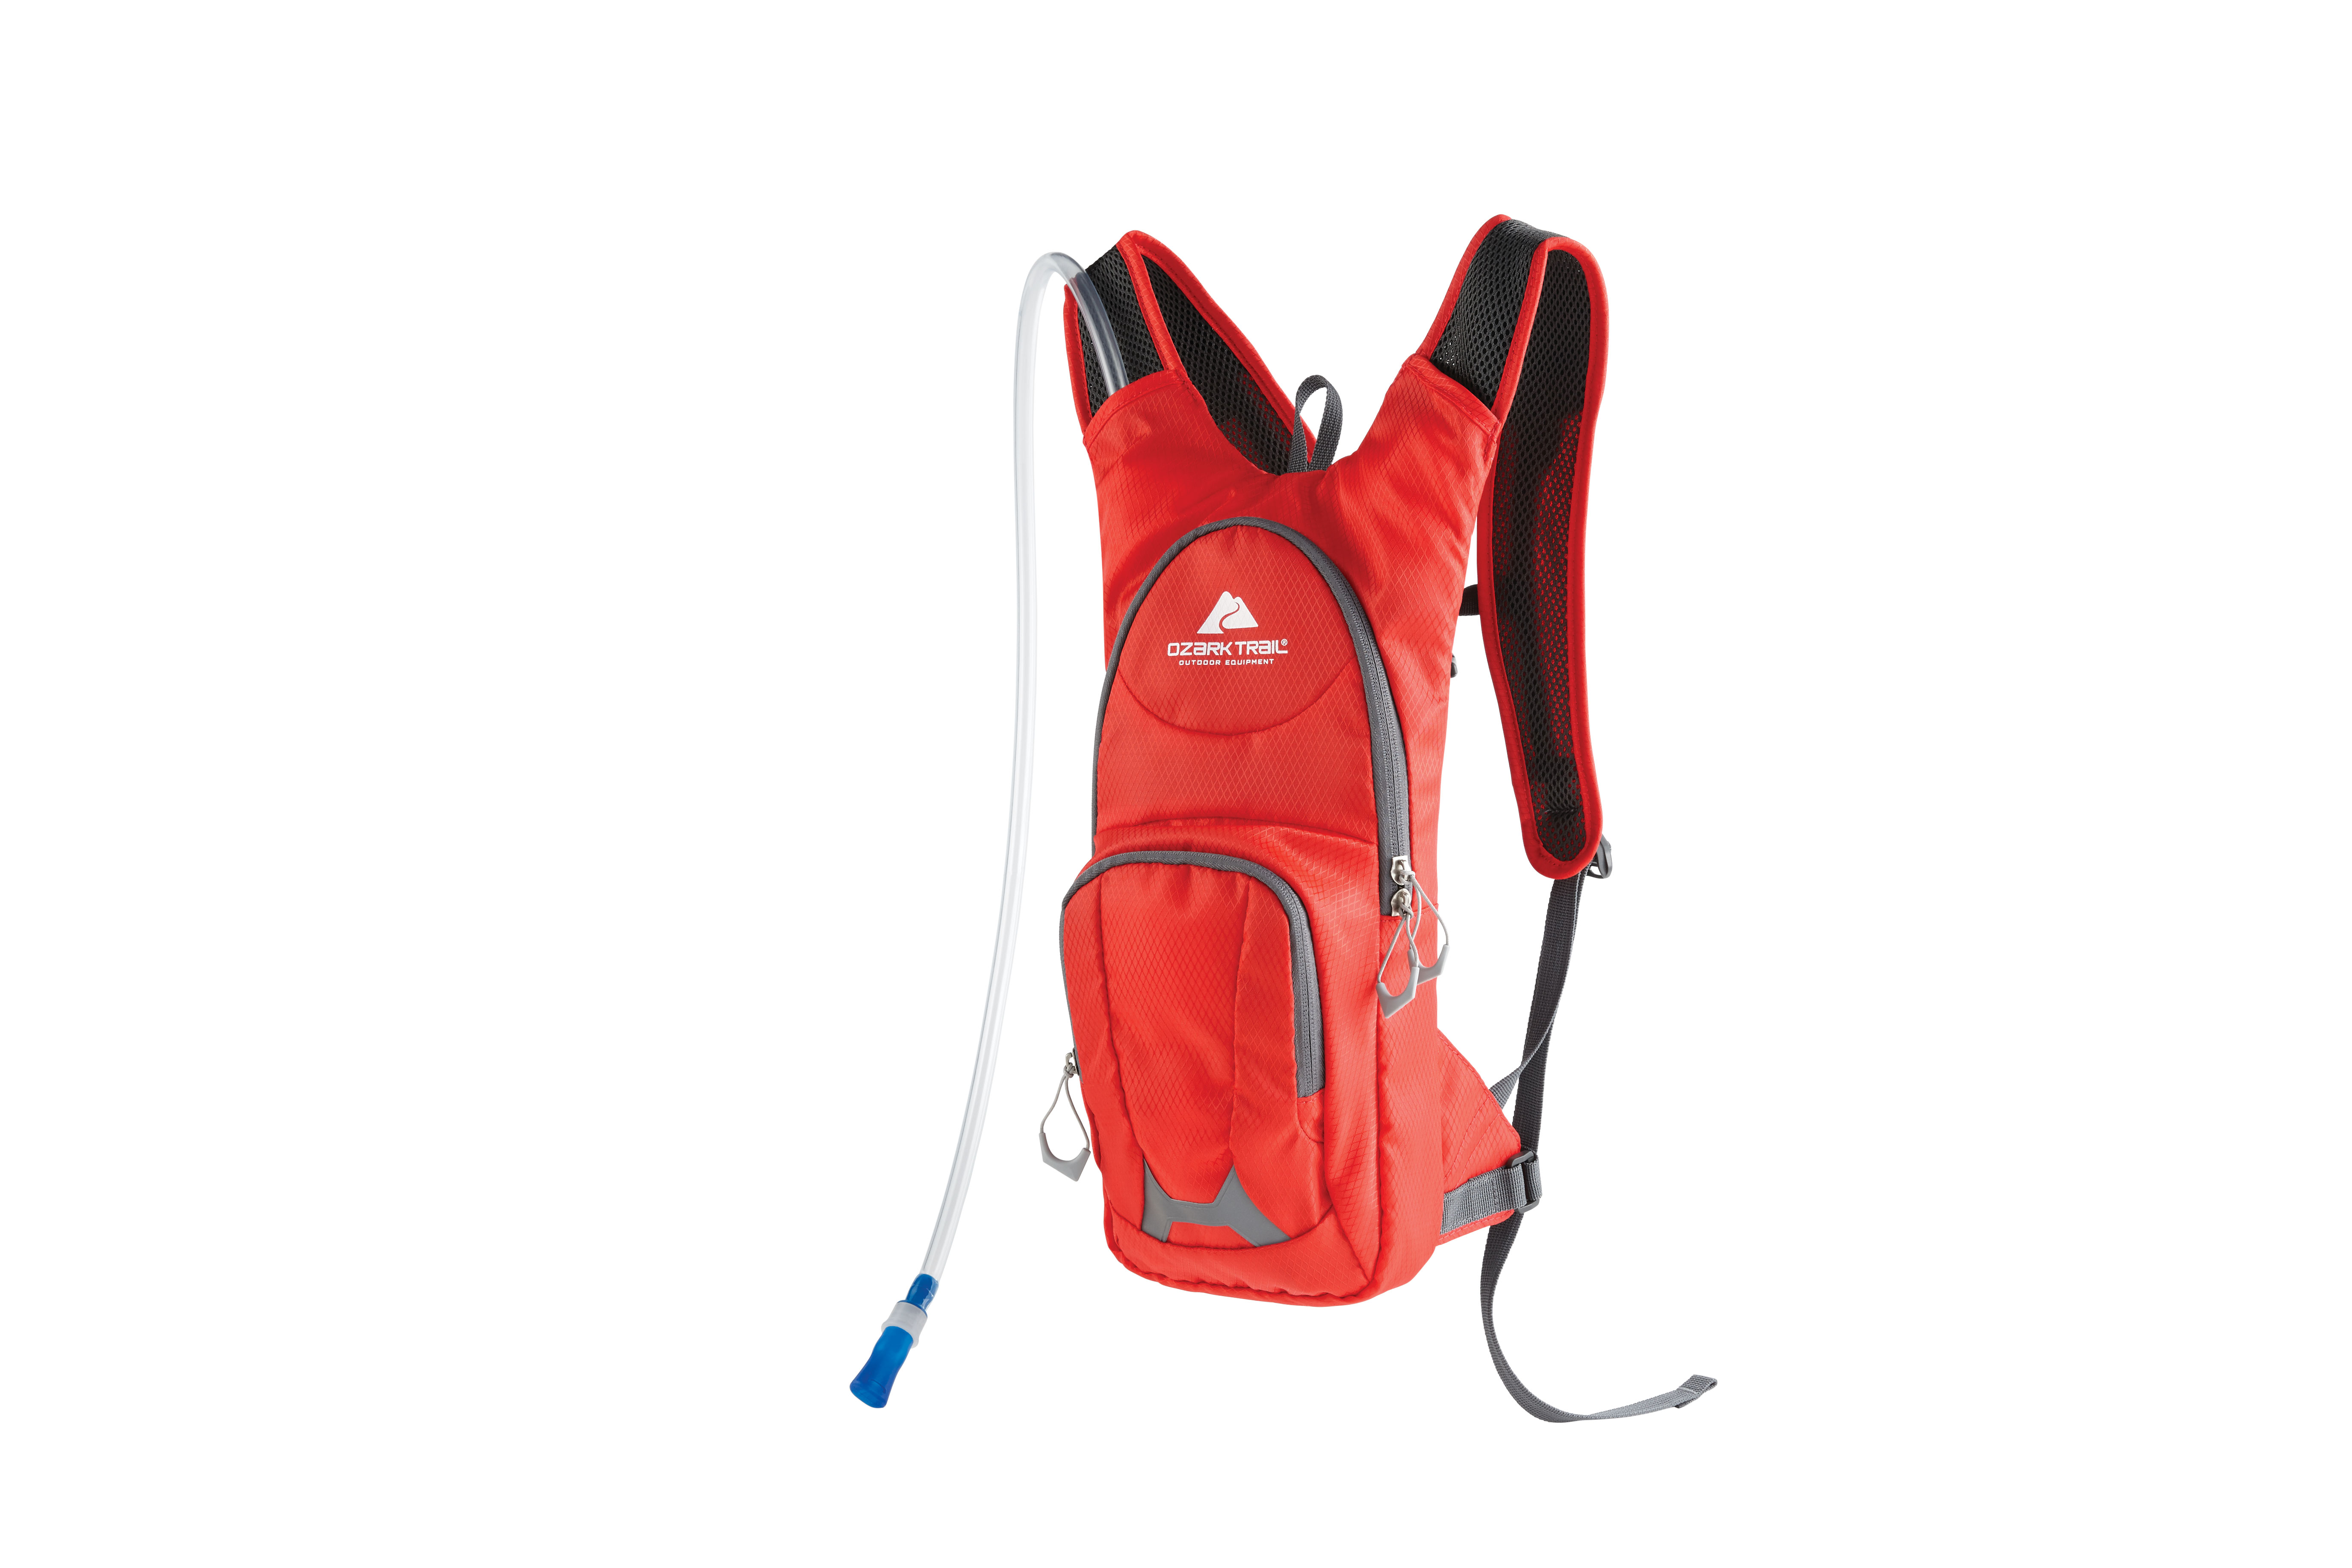 Ozark Trail Hydration Backpack with Hydration Bladder, 5L, Red by WESTFIELD OUTDOOR INC